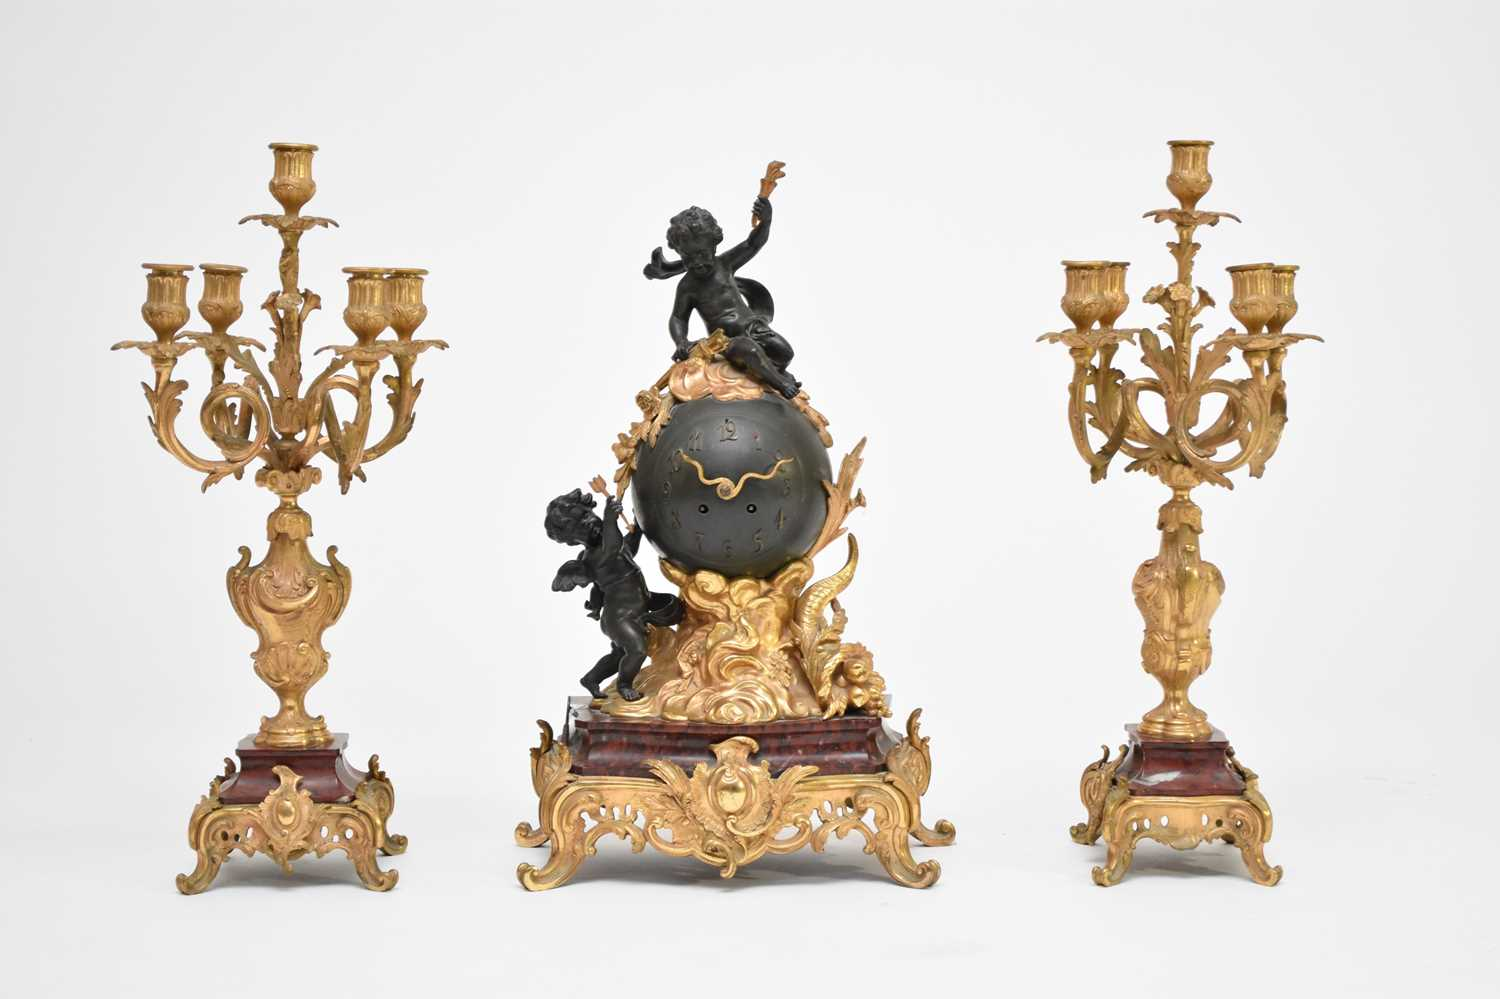 437 - A late 19th/early 20th century, French, Rococo style, ormolu and marble mantel clock garniture